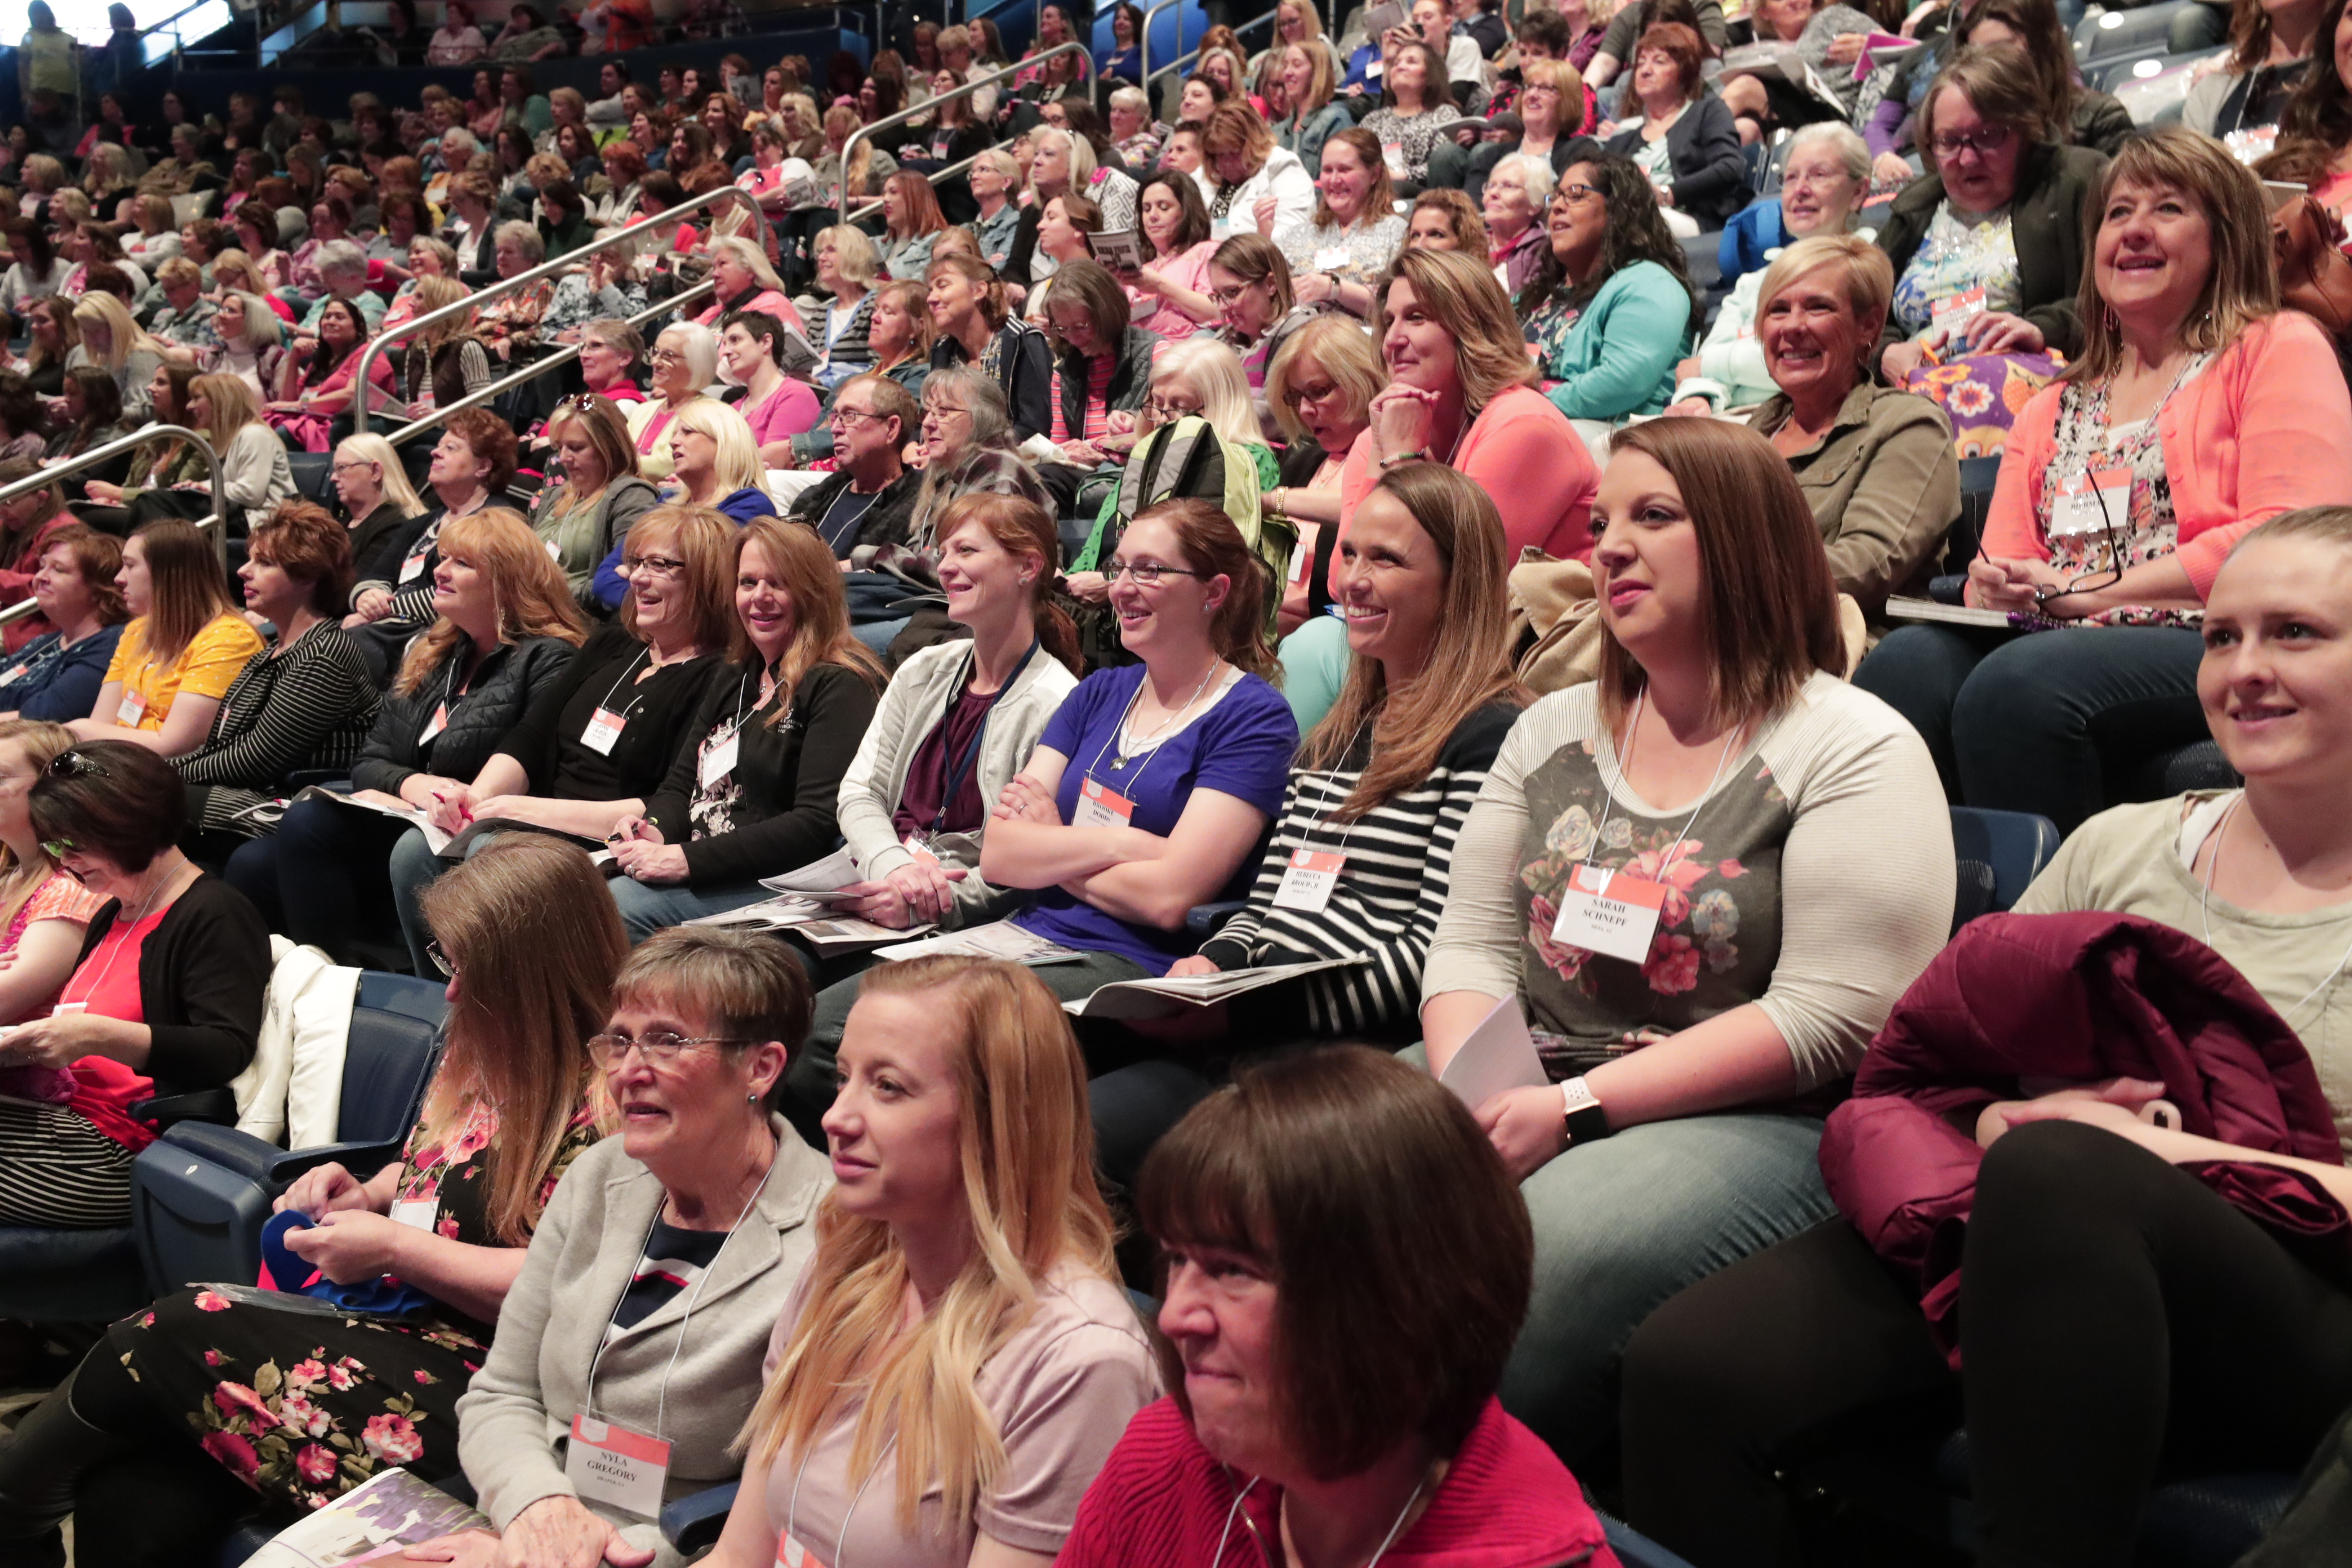 Women gather in the Marriott Center on the BYU campus in Provo, Utah, for the annual BYU Women's Conference, on May 2, 2019.